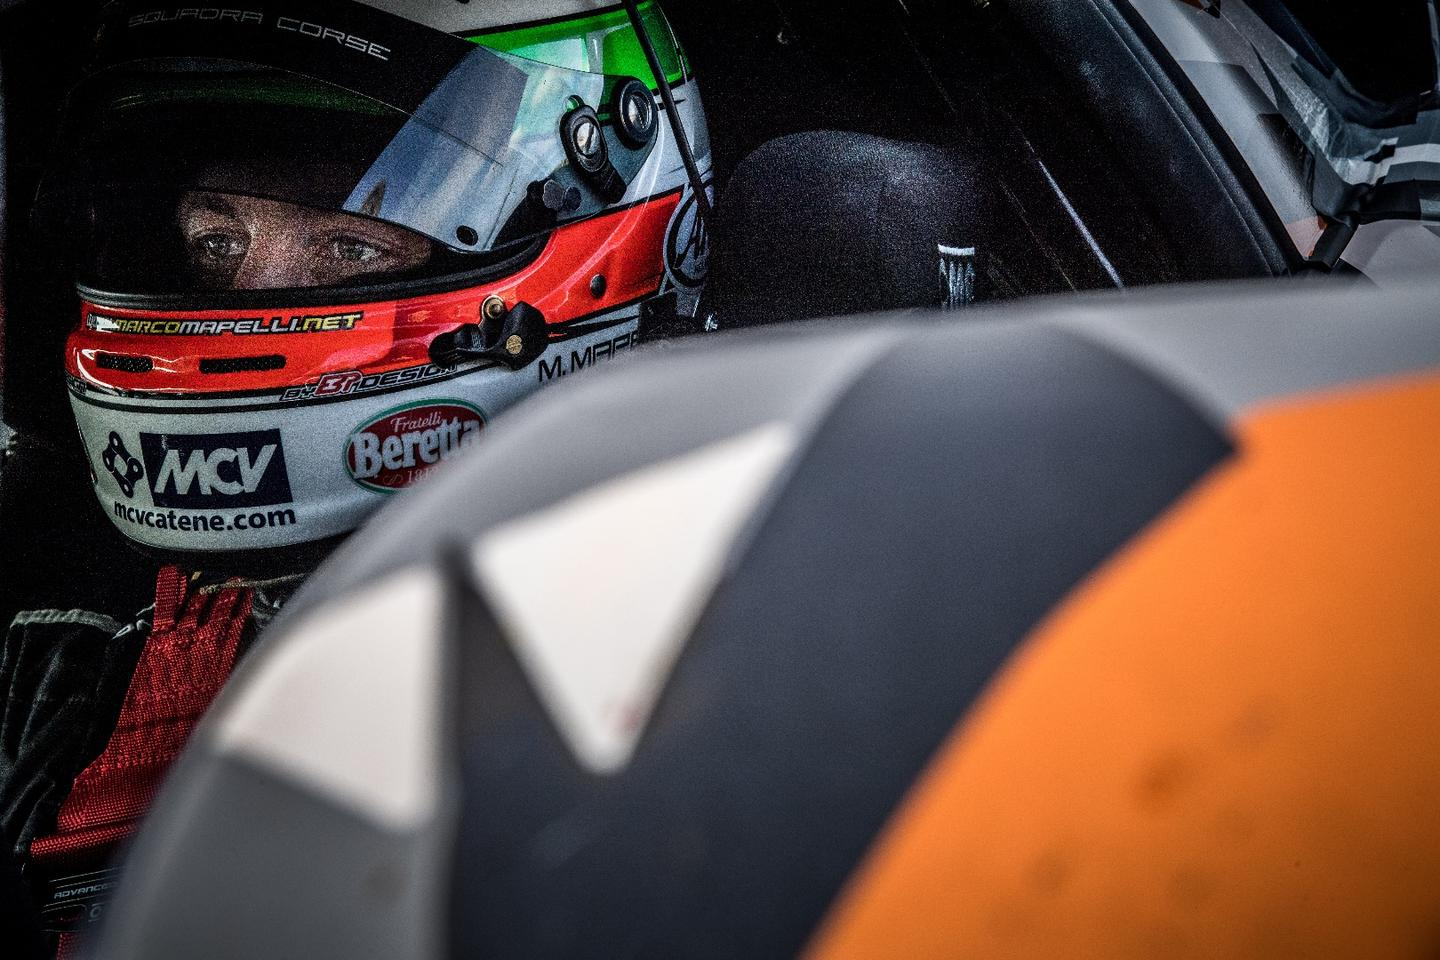 Suited for his run, Mapelli prepares to take the Aventador SVJonto the Nurburgring